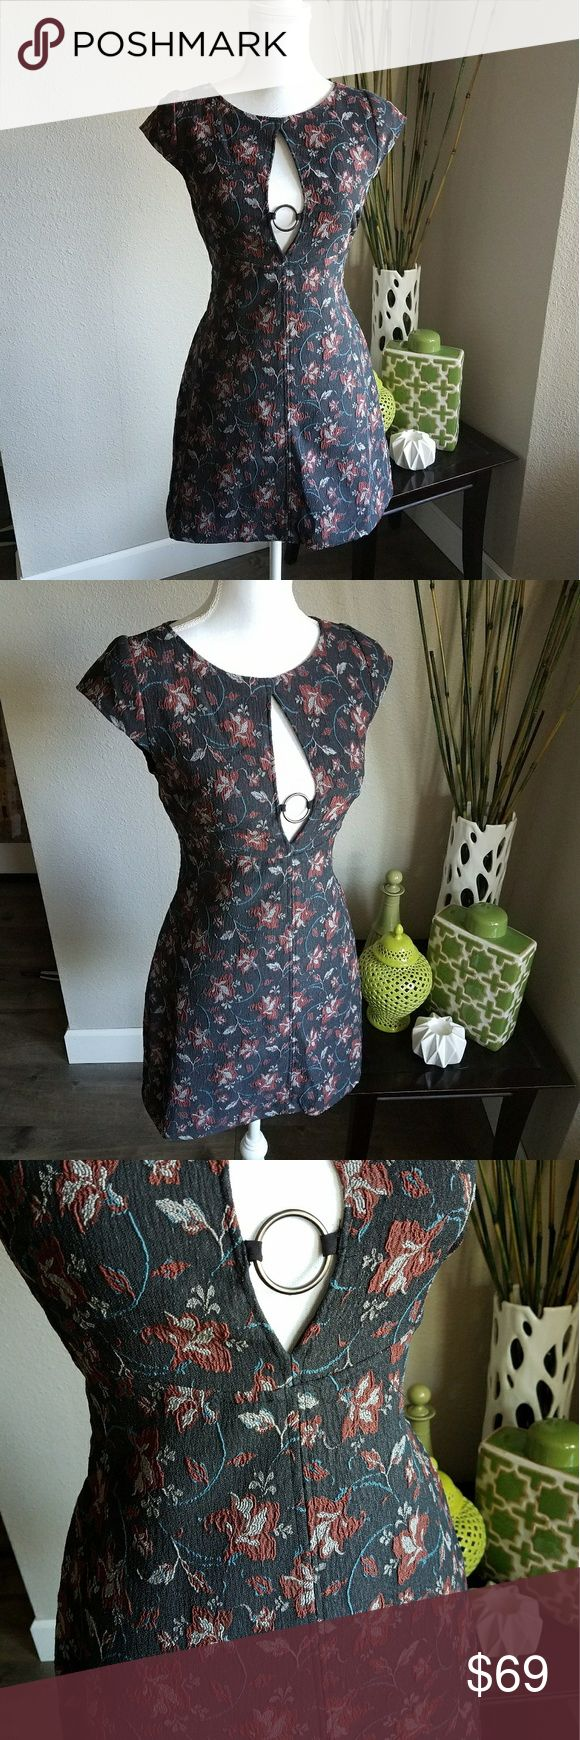 PRICE DROP⬇ Free People floral cut-out dress New with tags.   Gorgeous Free People black floral mini dress.  Absolutely beautiful floral design.   Featuring cut-outs and metal ring details.  Fabric has stretch for comfort.   Perfect for date night or girls night out! Smoke free and pet free home. Free People Dresses